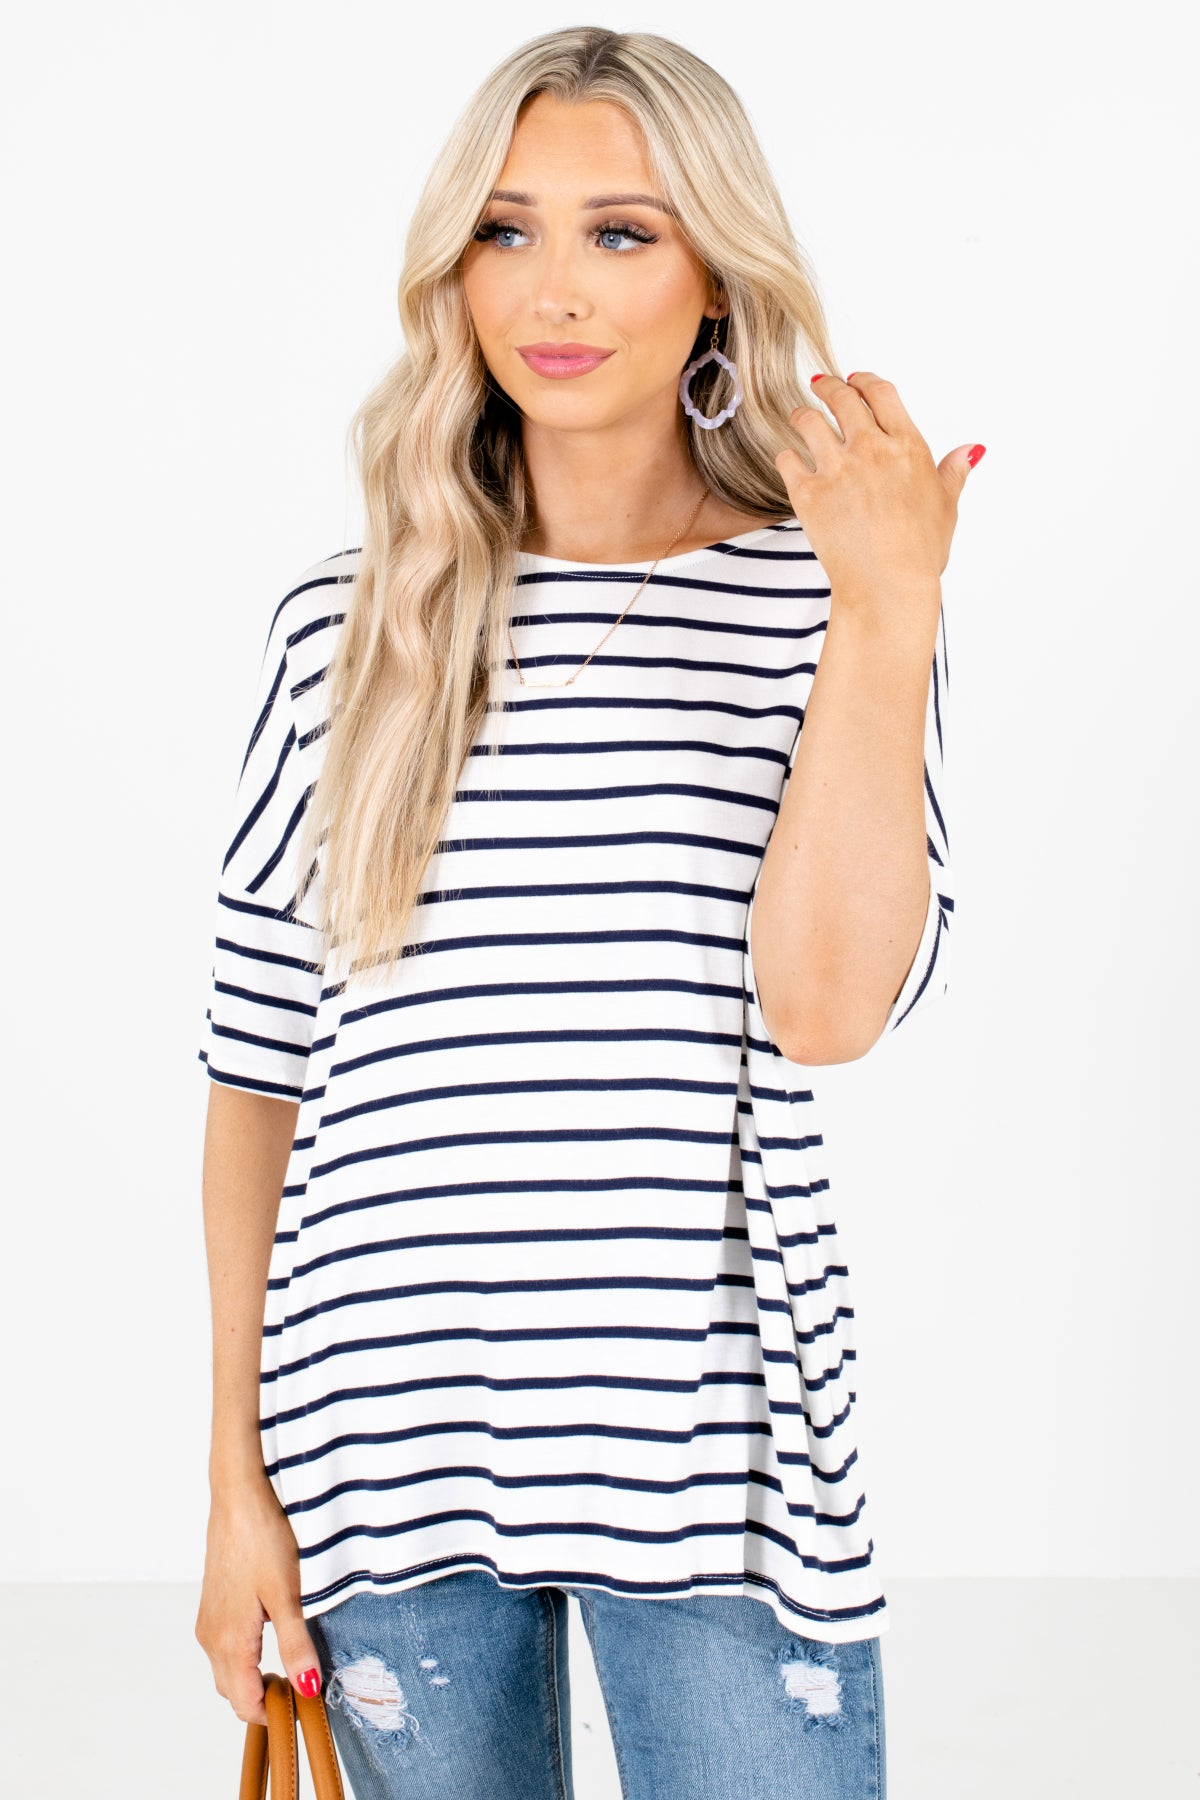 White and Navy Blue Stripe Patterned Boutique Tops for Women